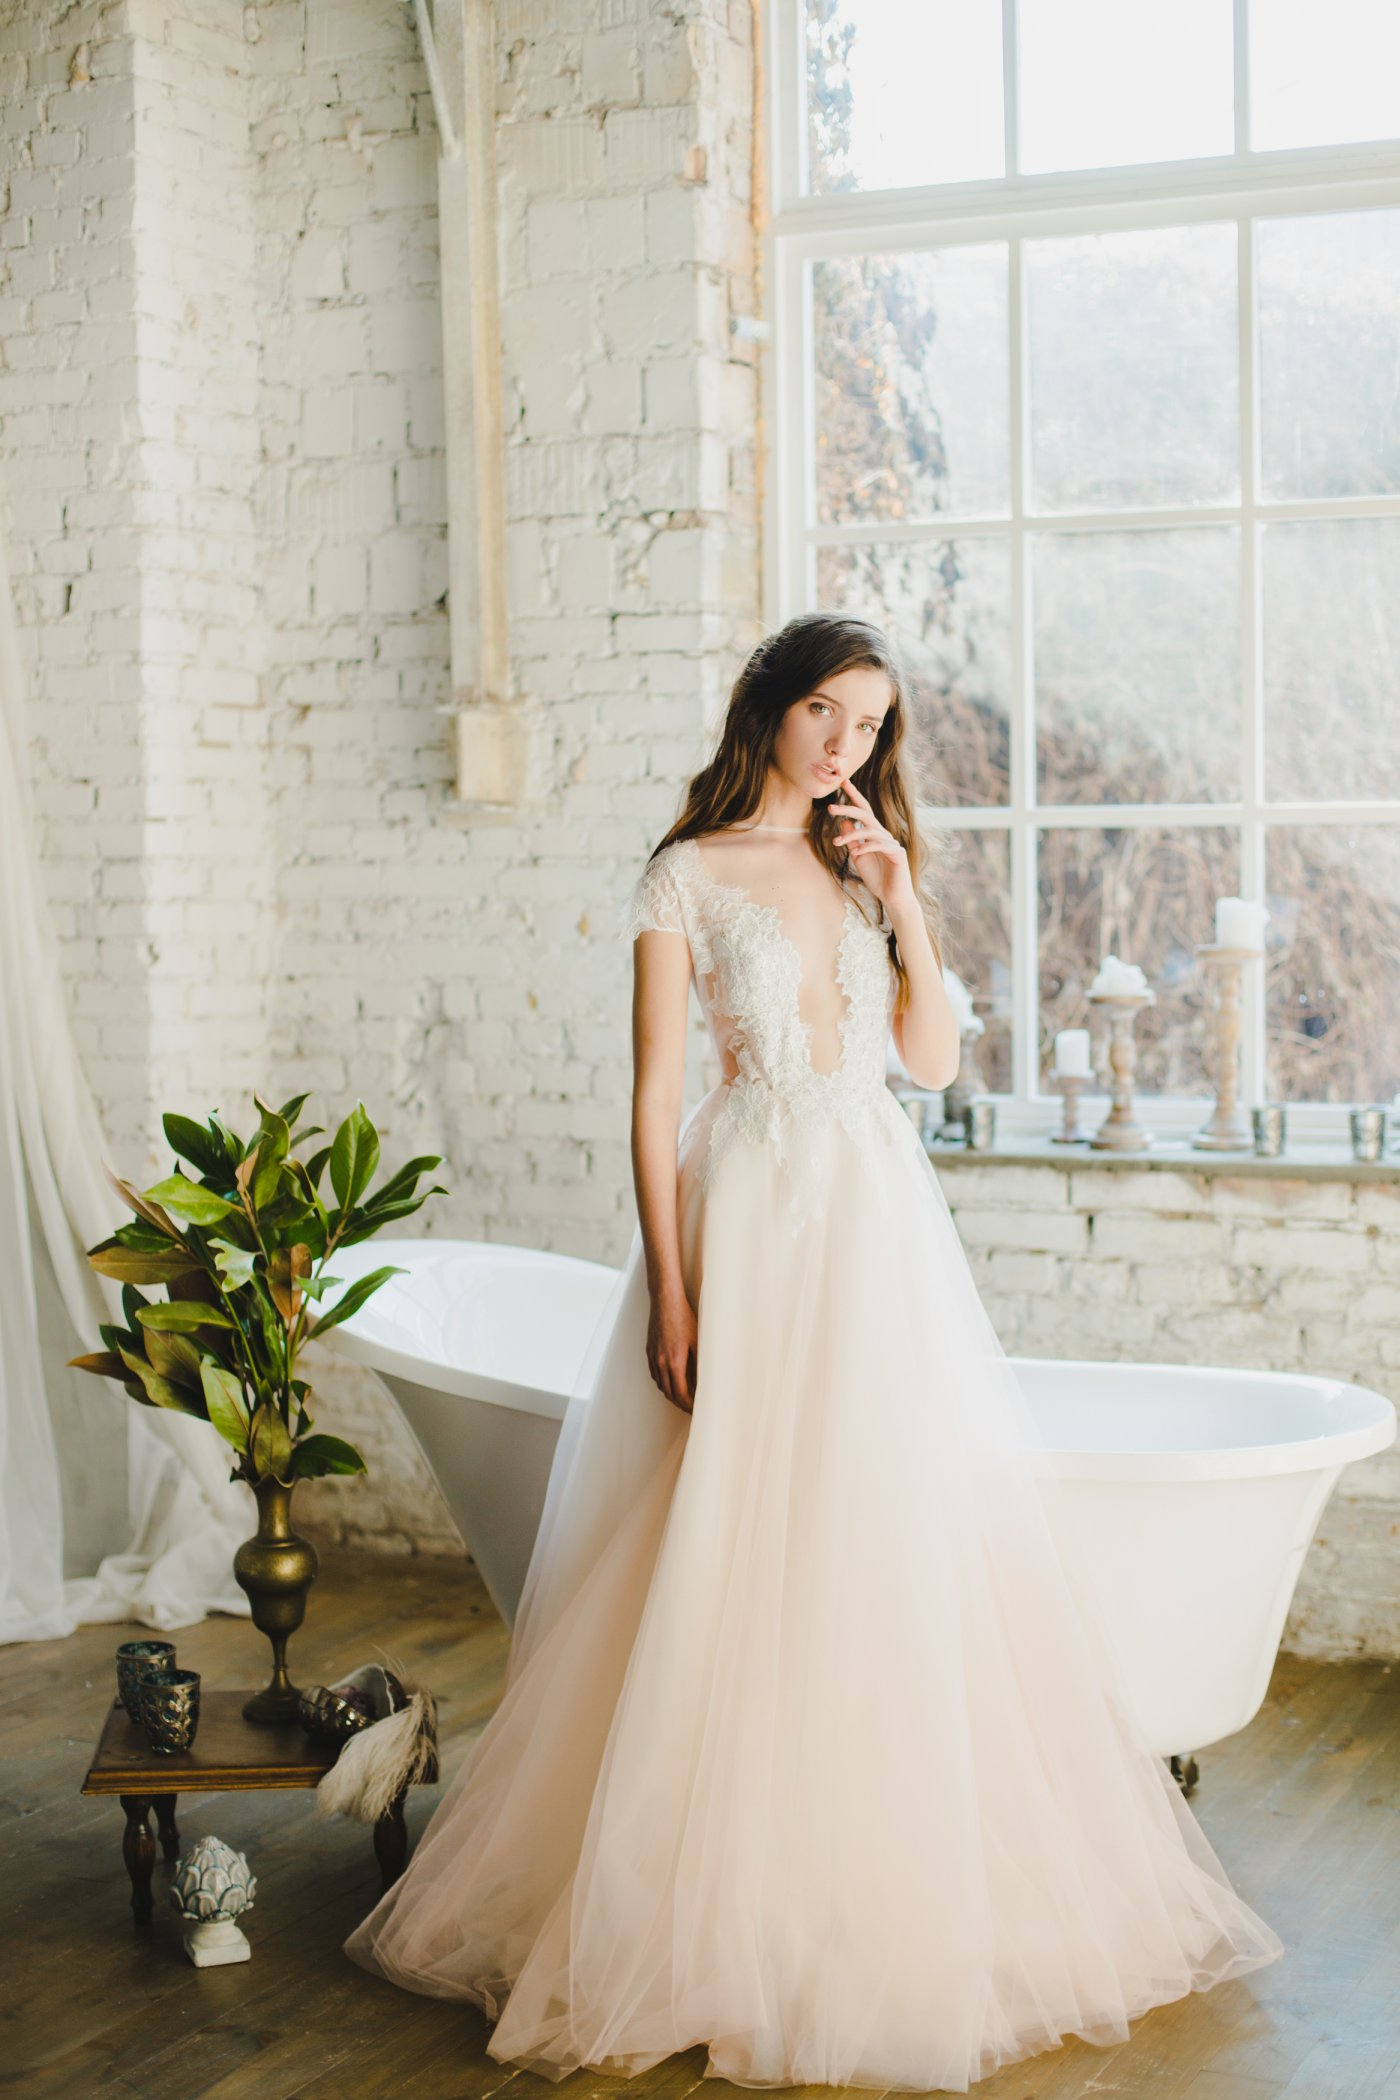 Peach cap sleeve wedding dress with sheer bodice | Cathy Telle